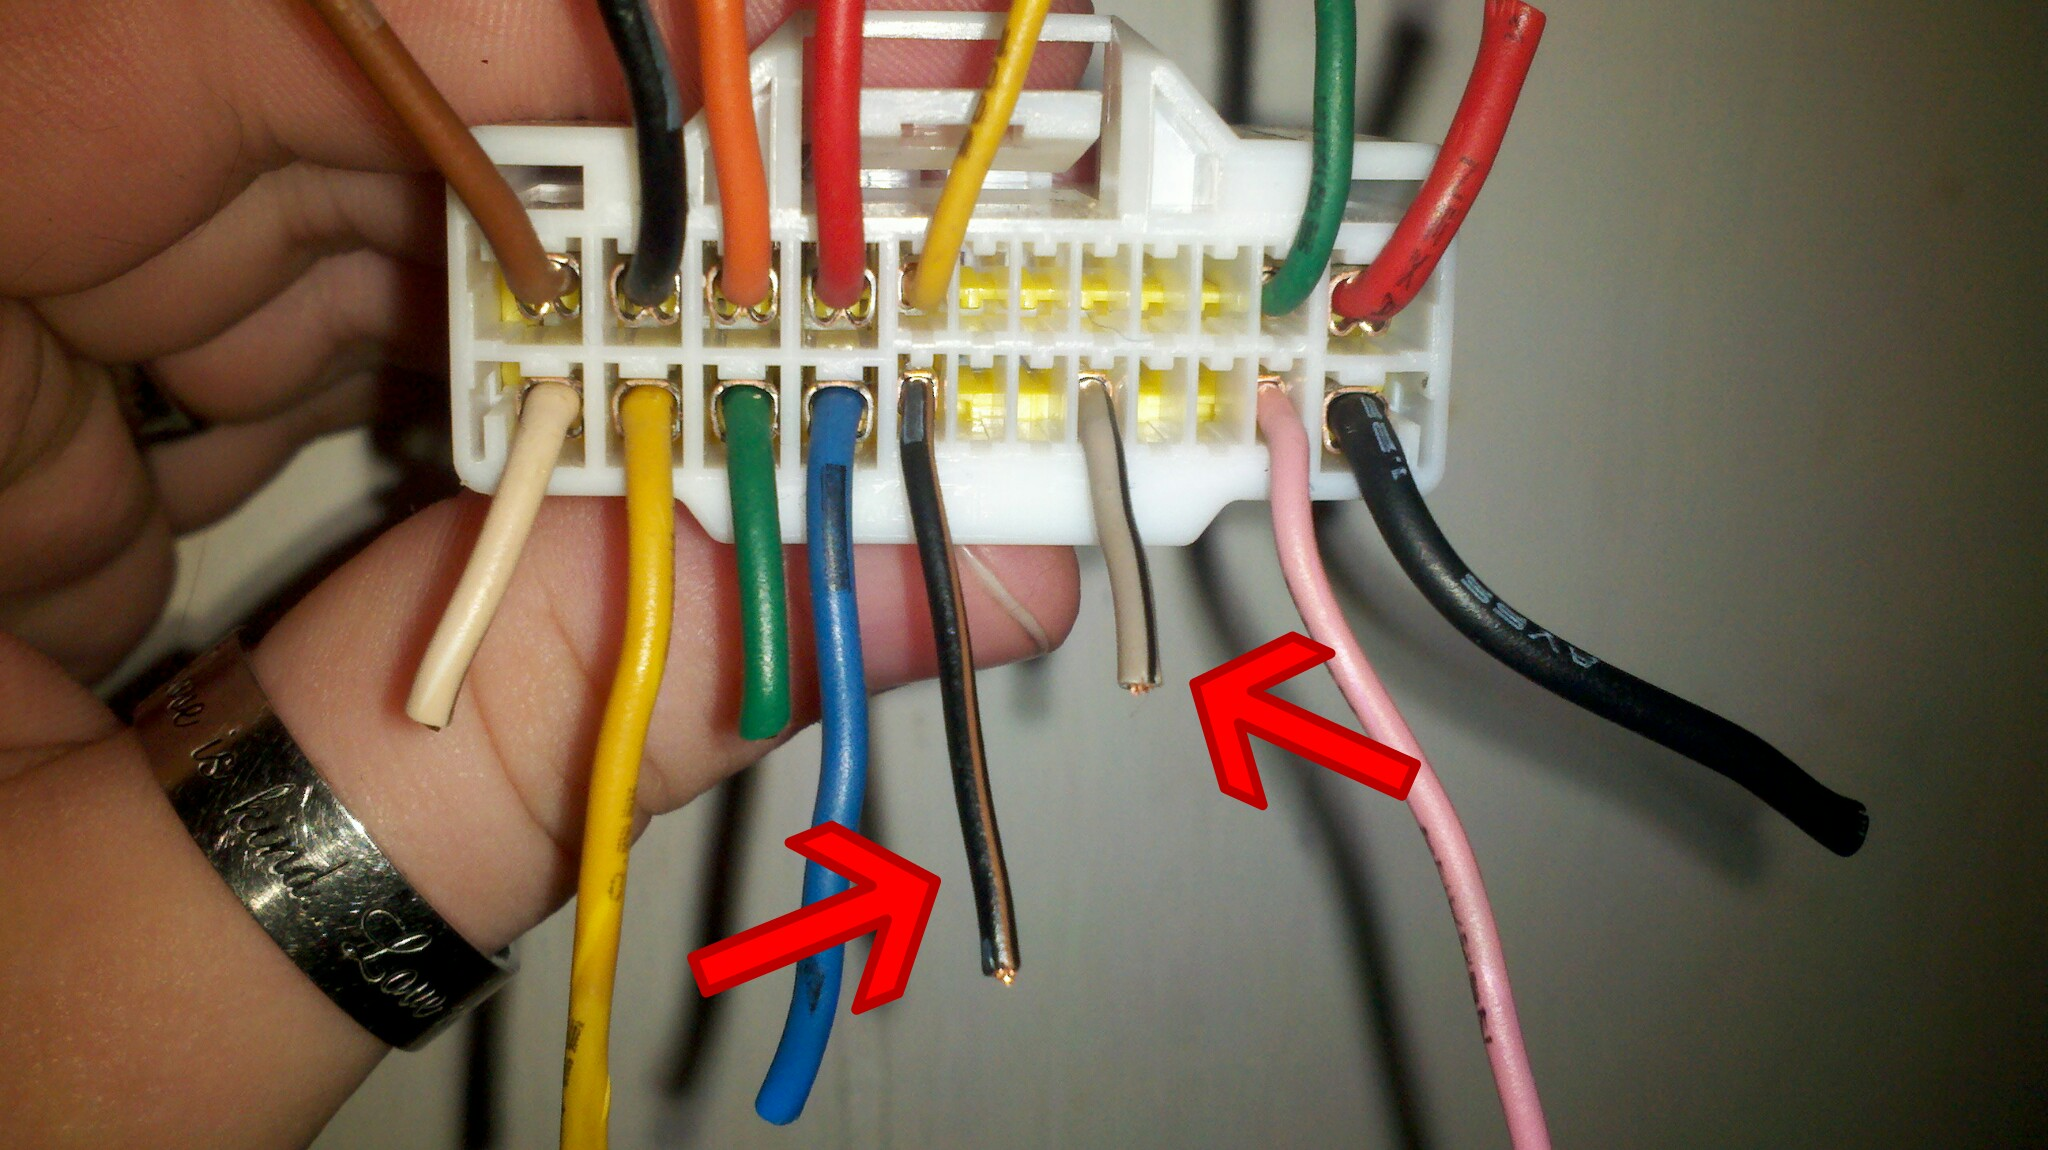 2012 08 10_055630_picsay 1344577943 pdf] elantra radio wires colours (28 pages) hyundai elantra 2001 hyundai accent radio wiring at crackthecode.co